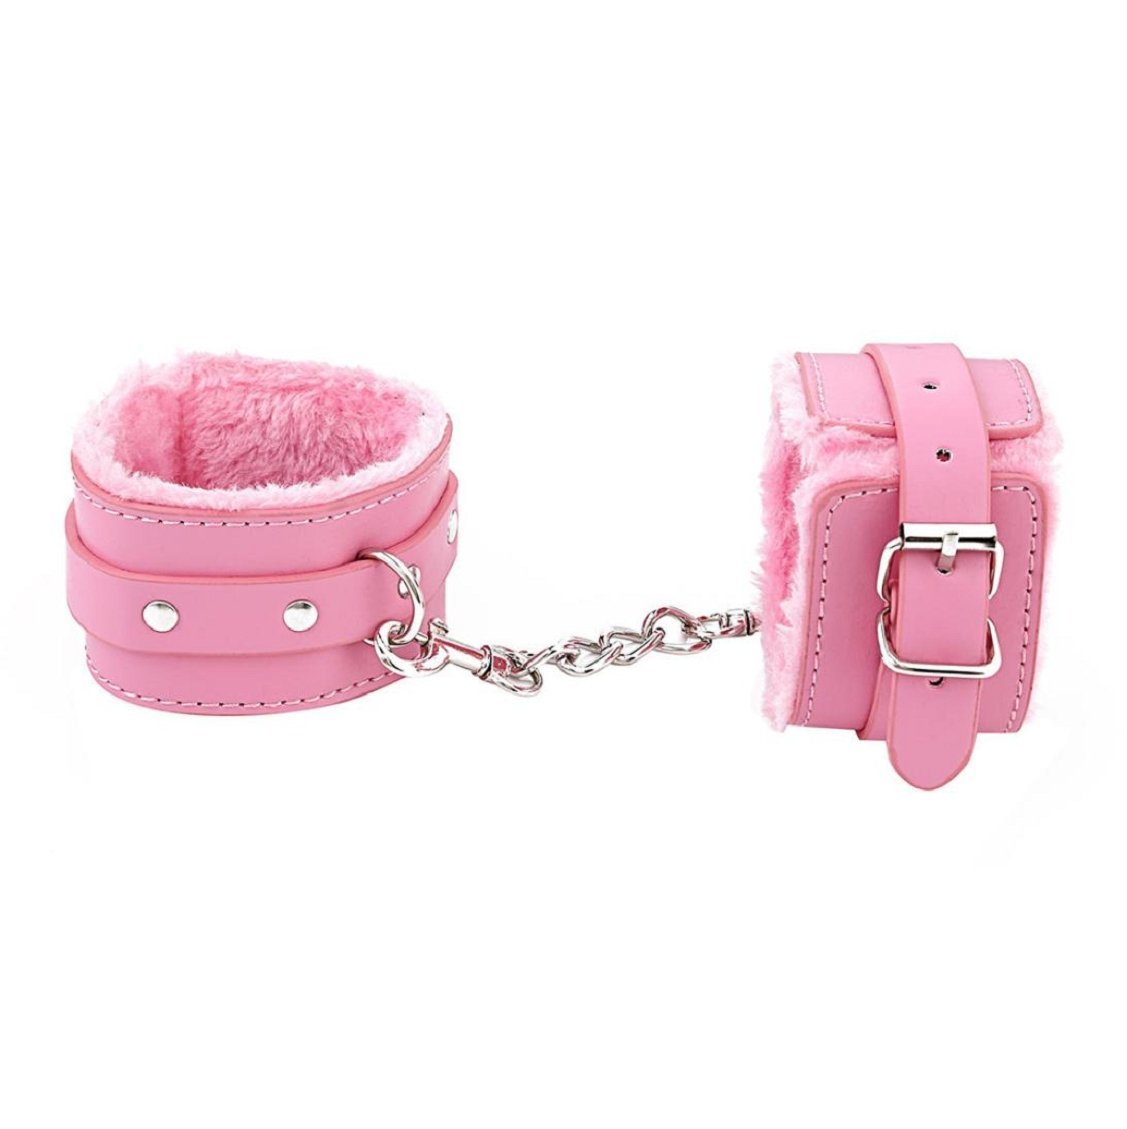 Vovomay Adjustable Plush PU Leather Slave Wrist & Ankle Handcuffs Hand Restraints Toy